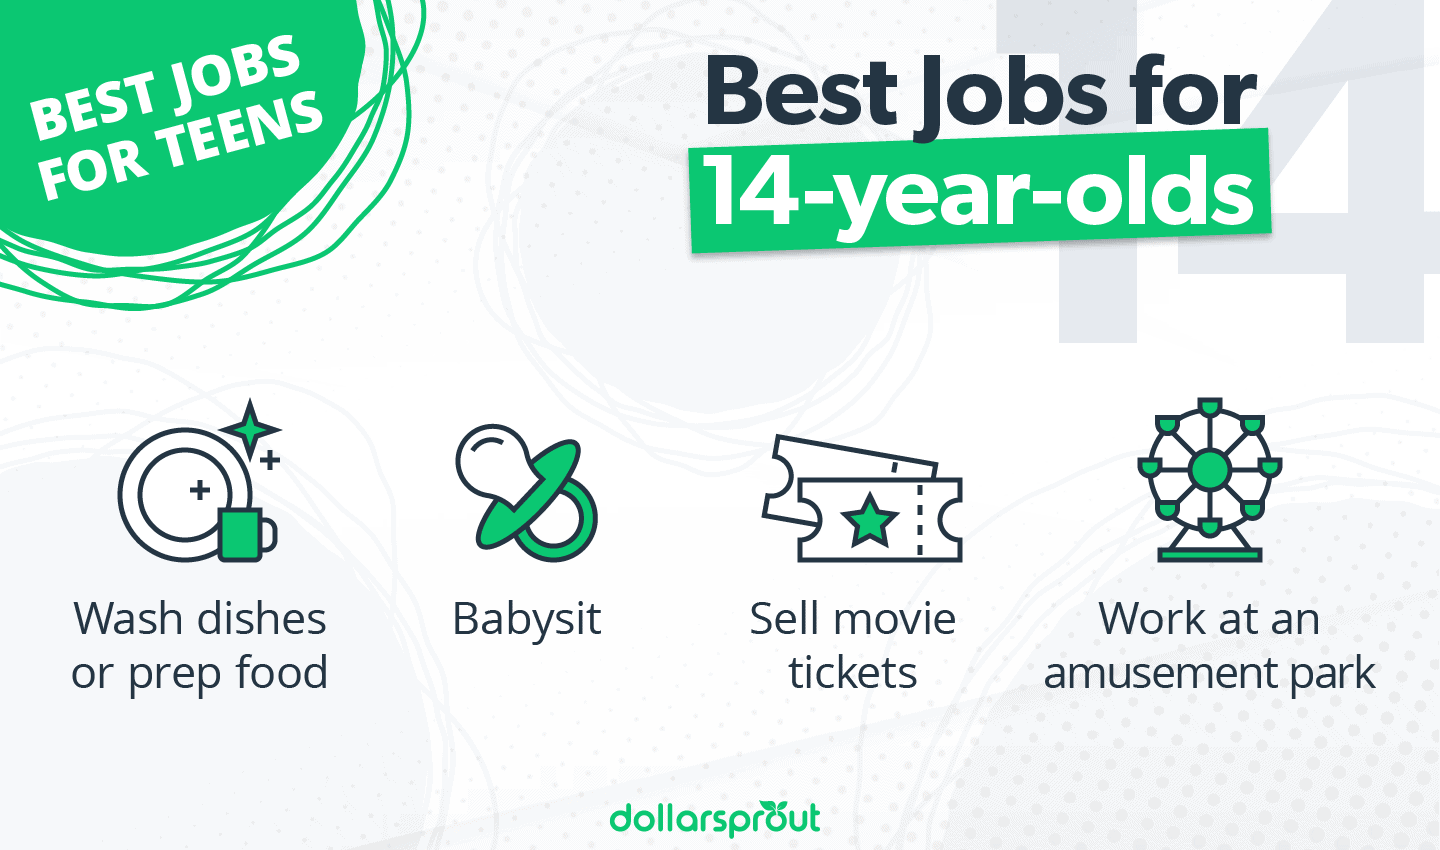 Best Jobs for 14-year-olds